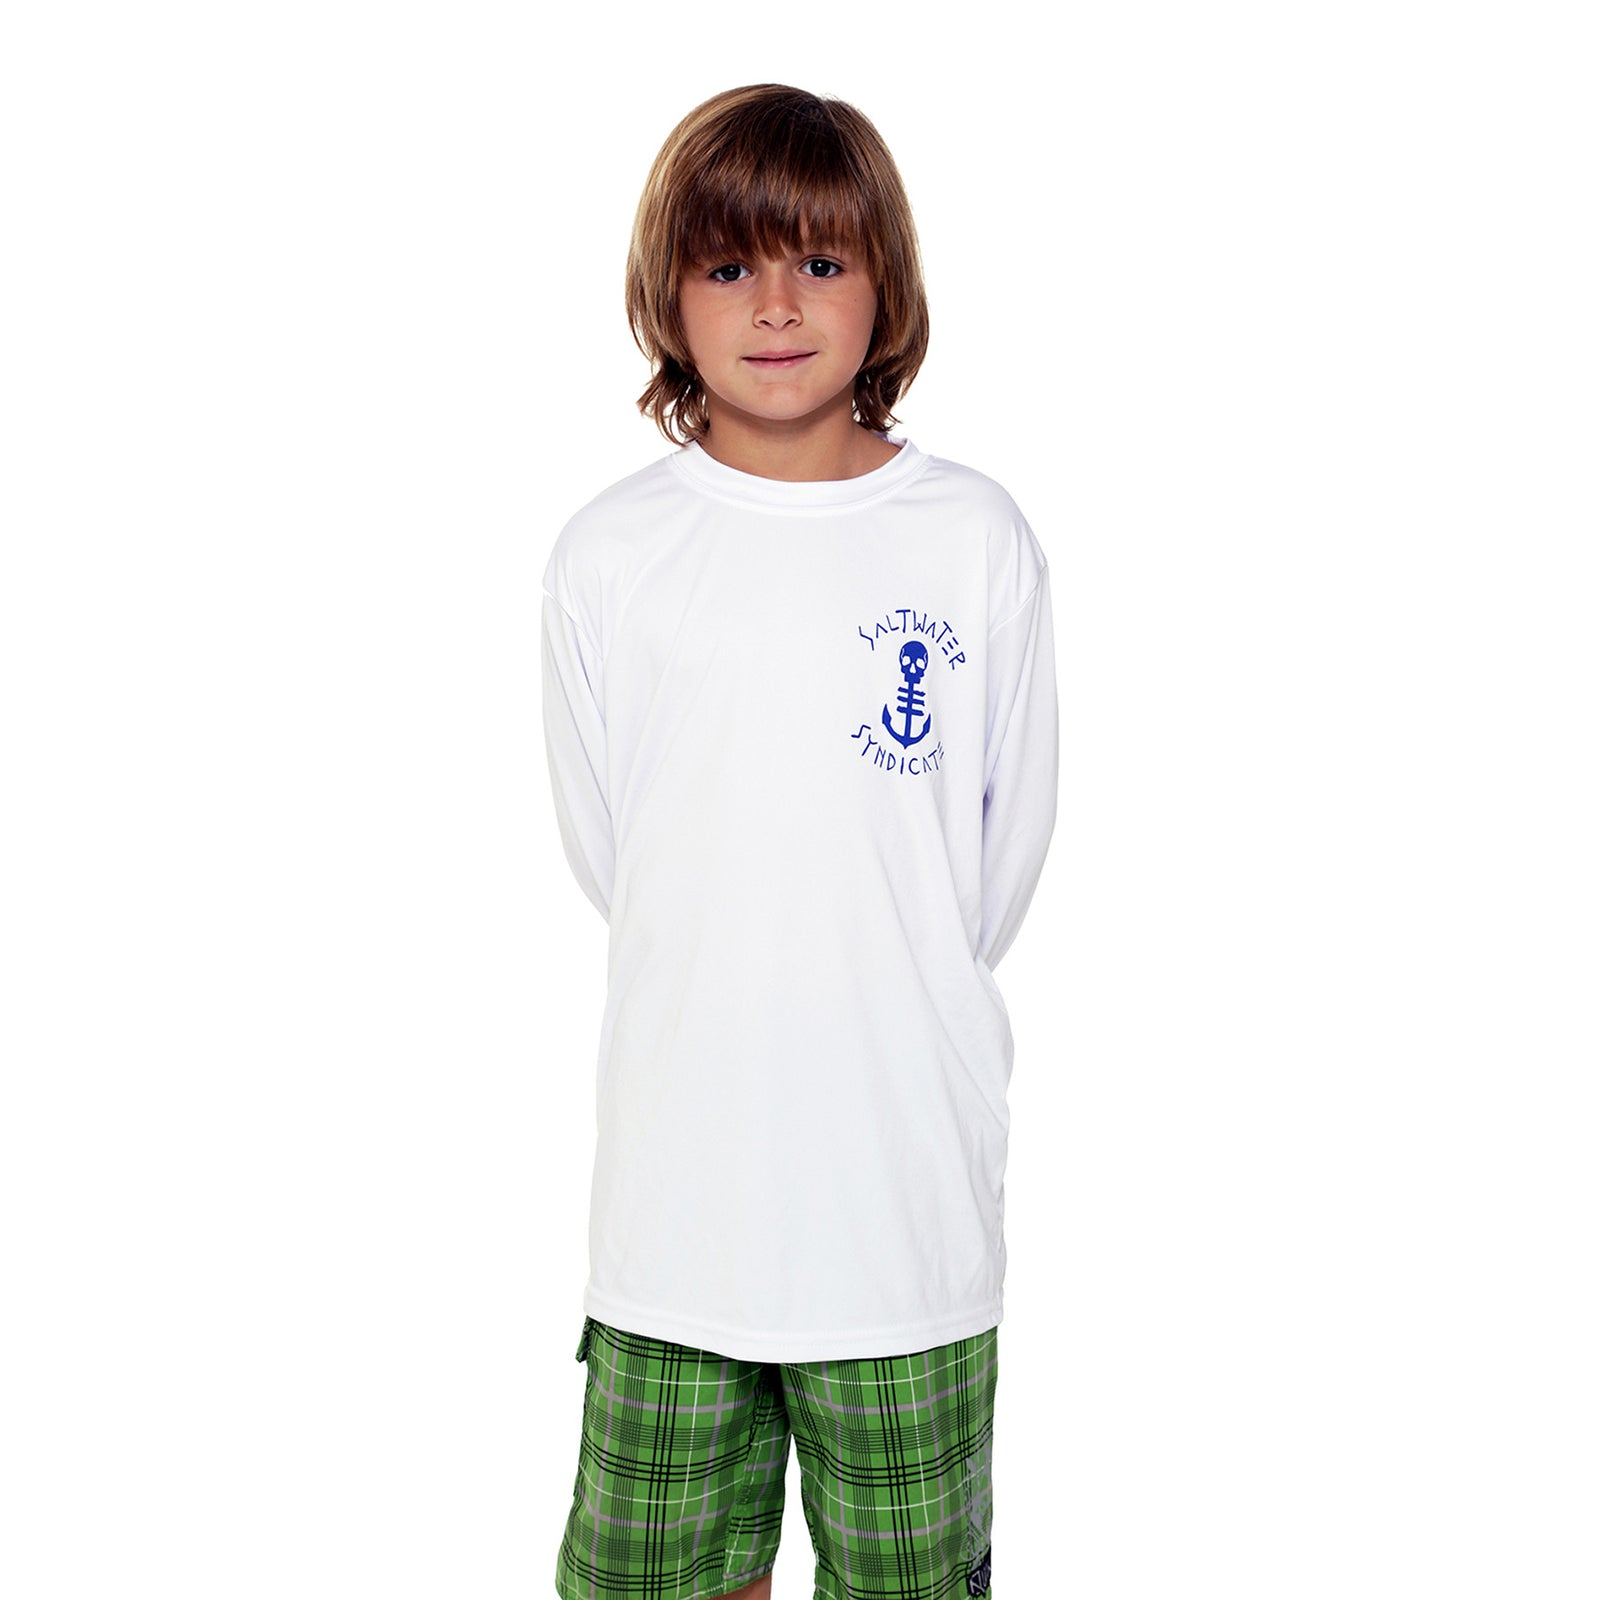 Youth Performance UPF- White/Deep Blue - Saltwater Syndicate - 2